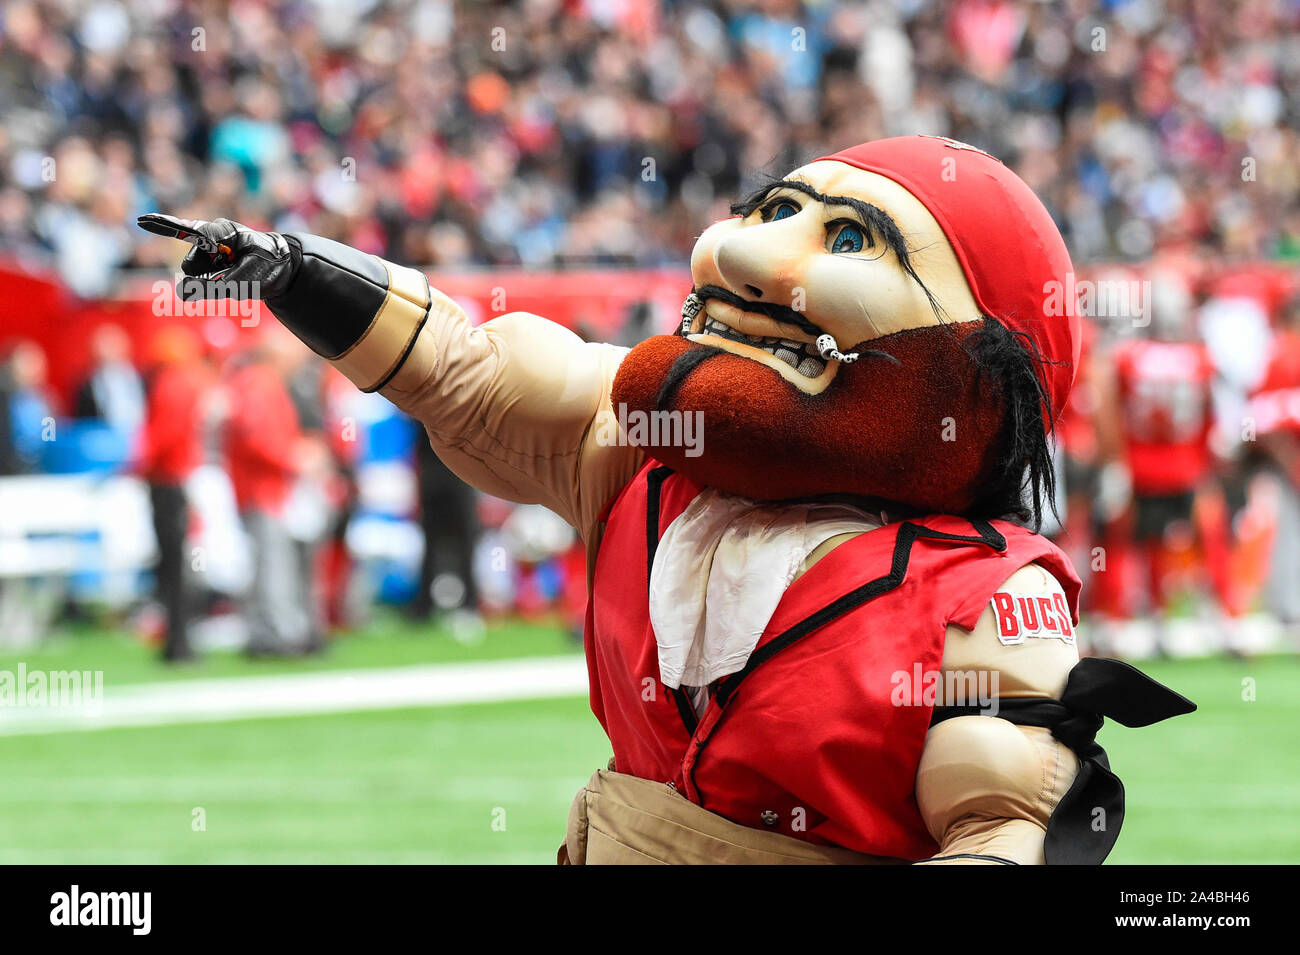 London, UK.  13 October 2019. Buccaneers mascot during the NFL match Tampa Bay Buccaneers v Carolina Panthers at Tottenham Hotspur Stadium. Final score Buccaneers 26, Panthers 37.   Credit: Stephen Chung / Alamy Live News Stock Photo